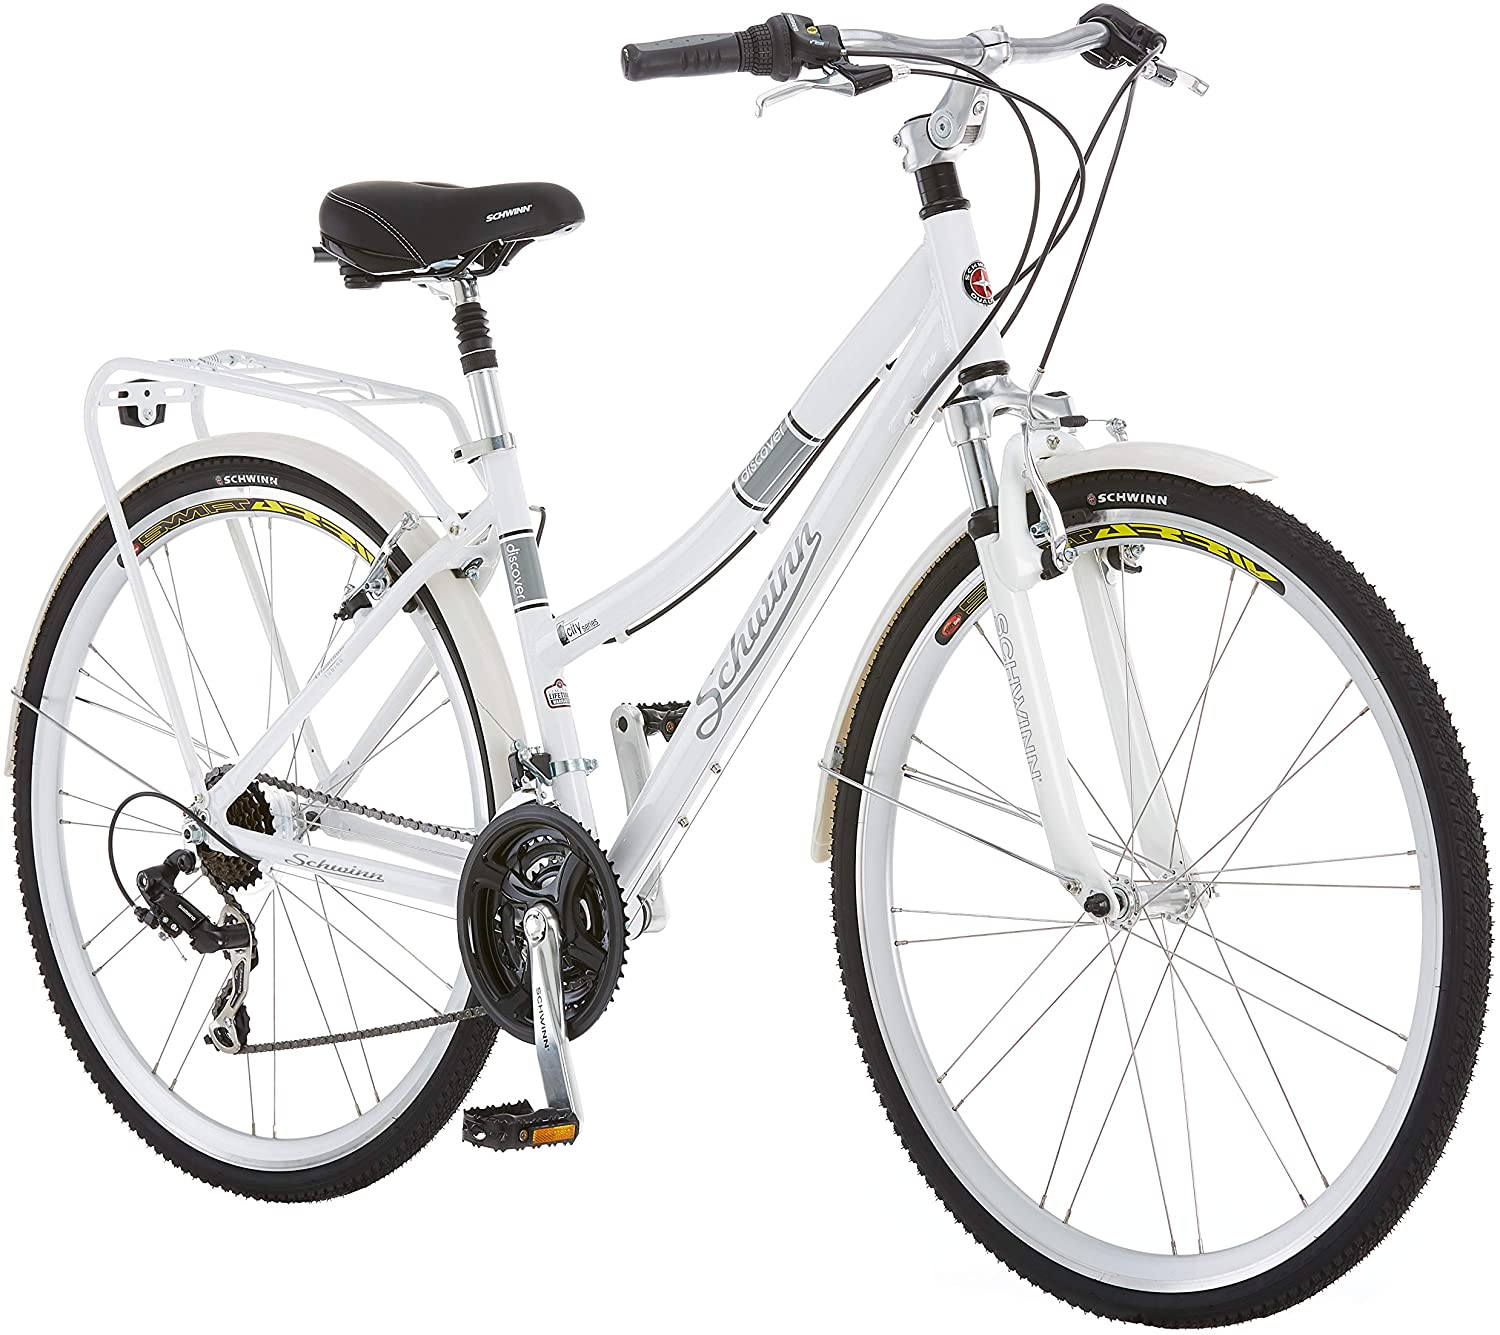 Schwinn Comfort Bycicle for Adults